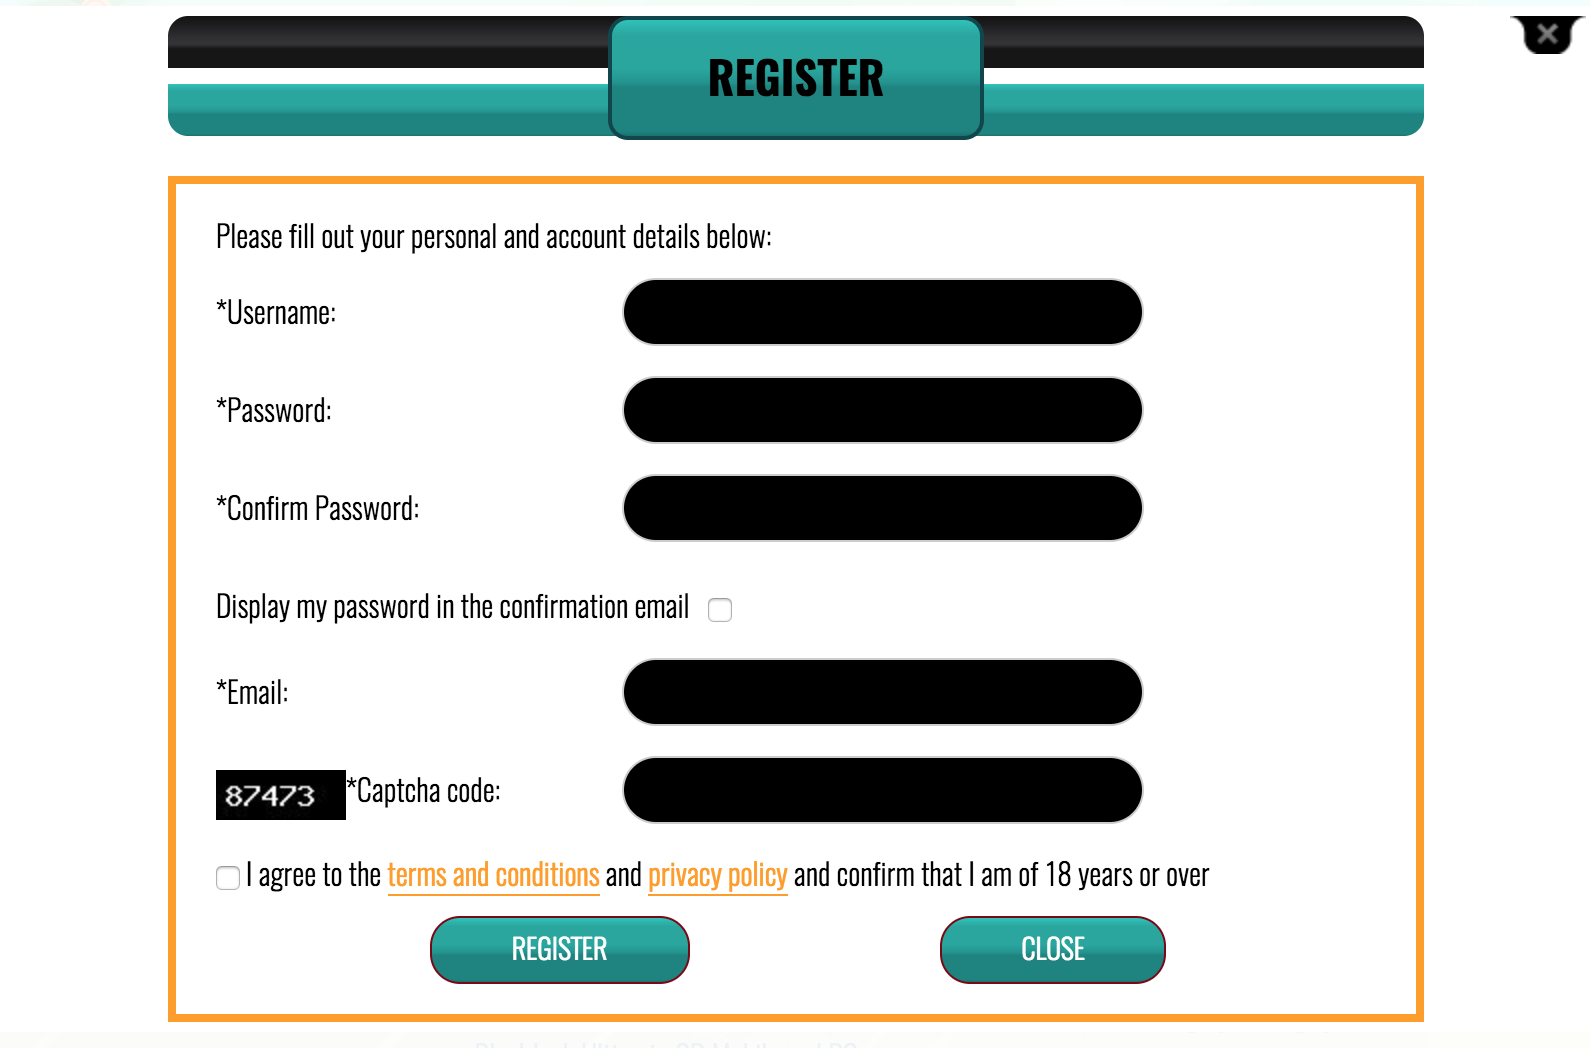 Registration Page at Coin Plaza